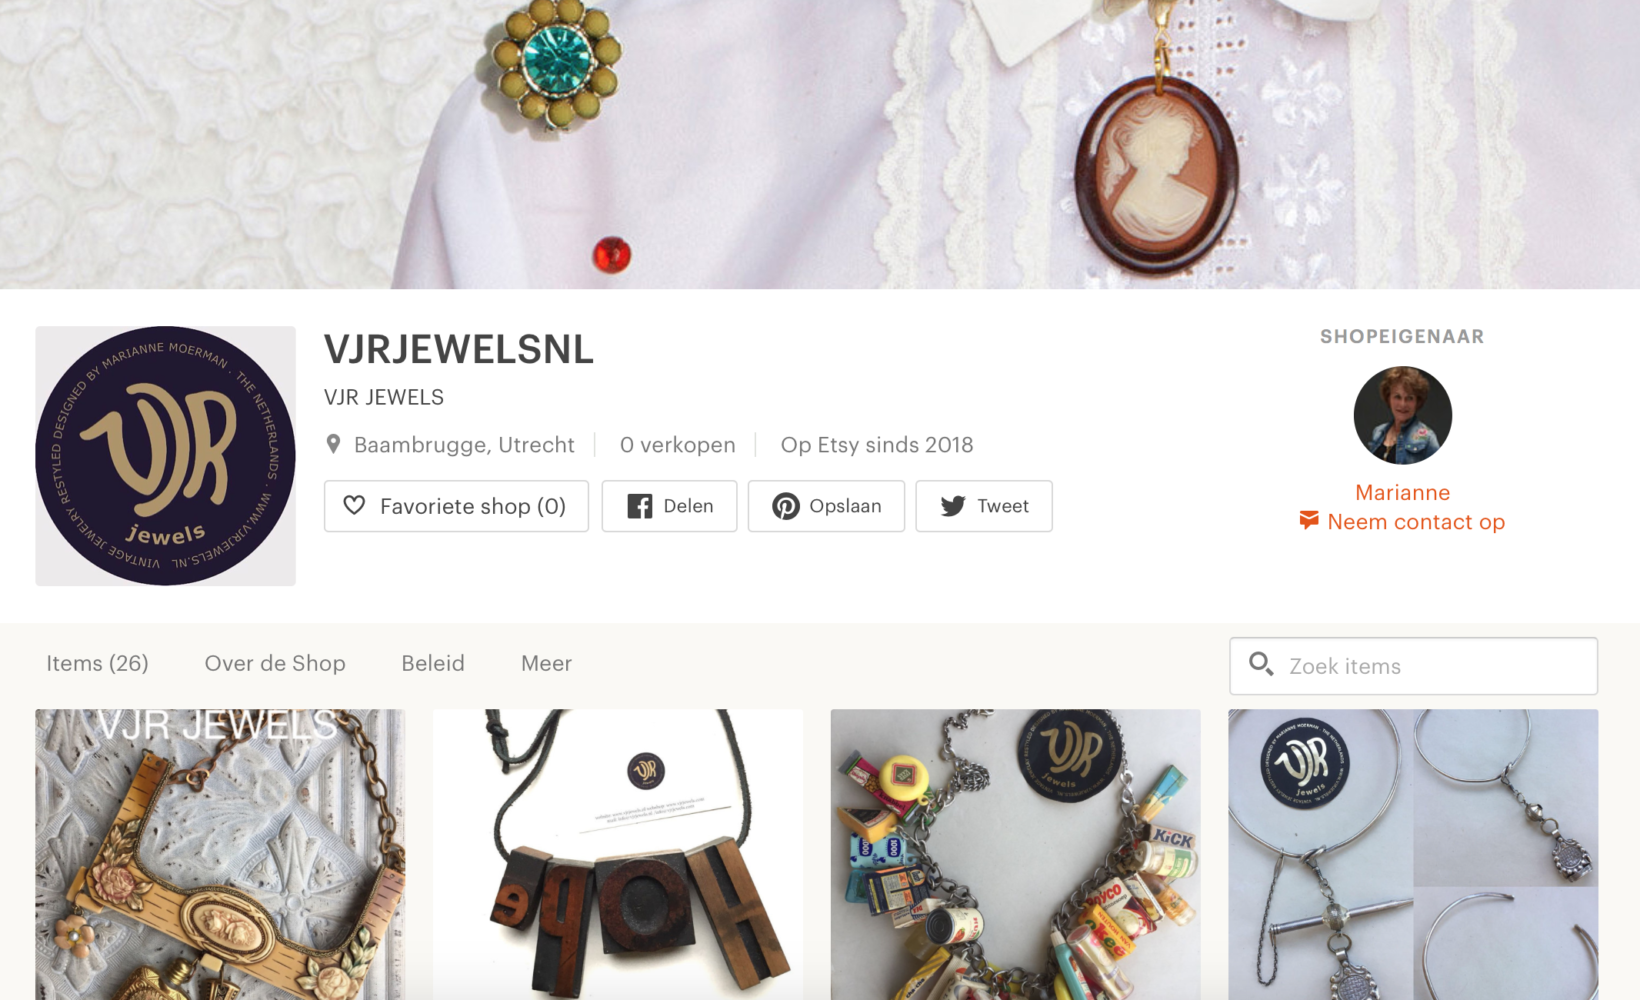 New Sellingpoint VJR Jewels op Etsy.com